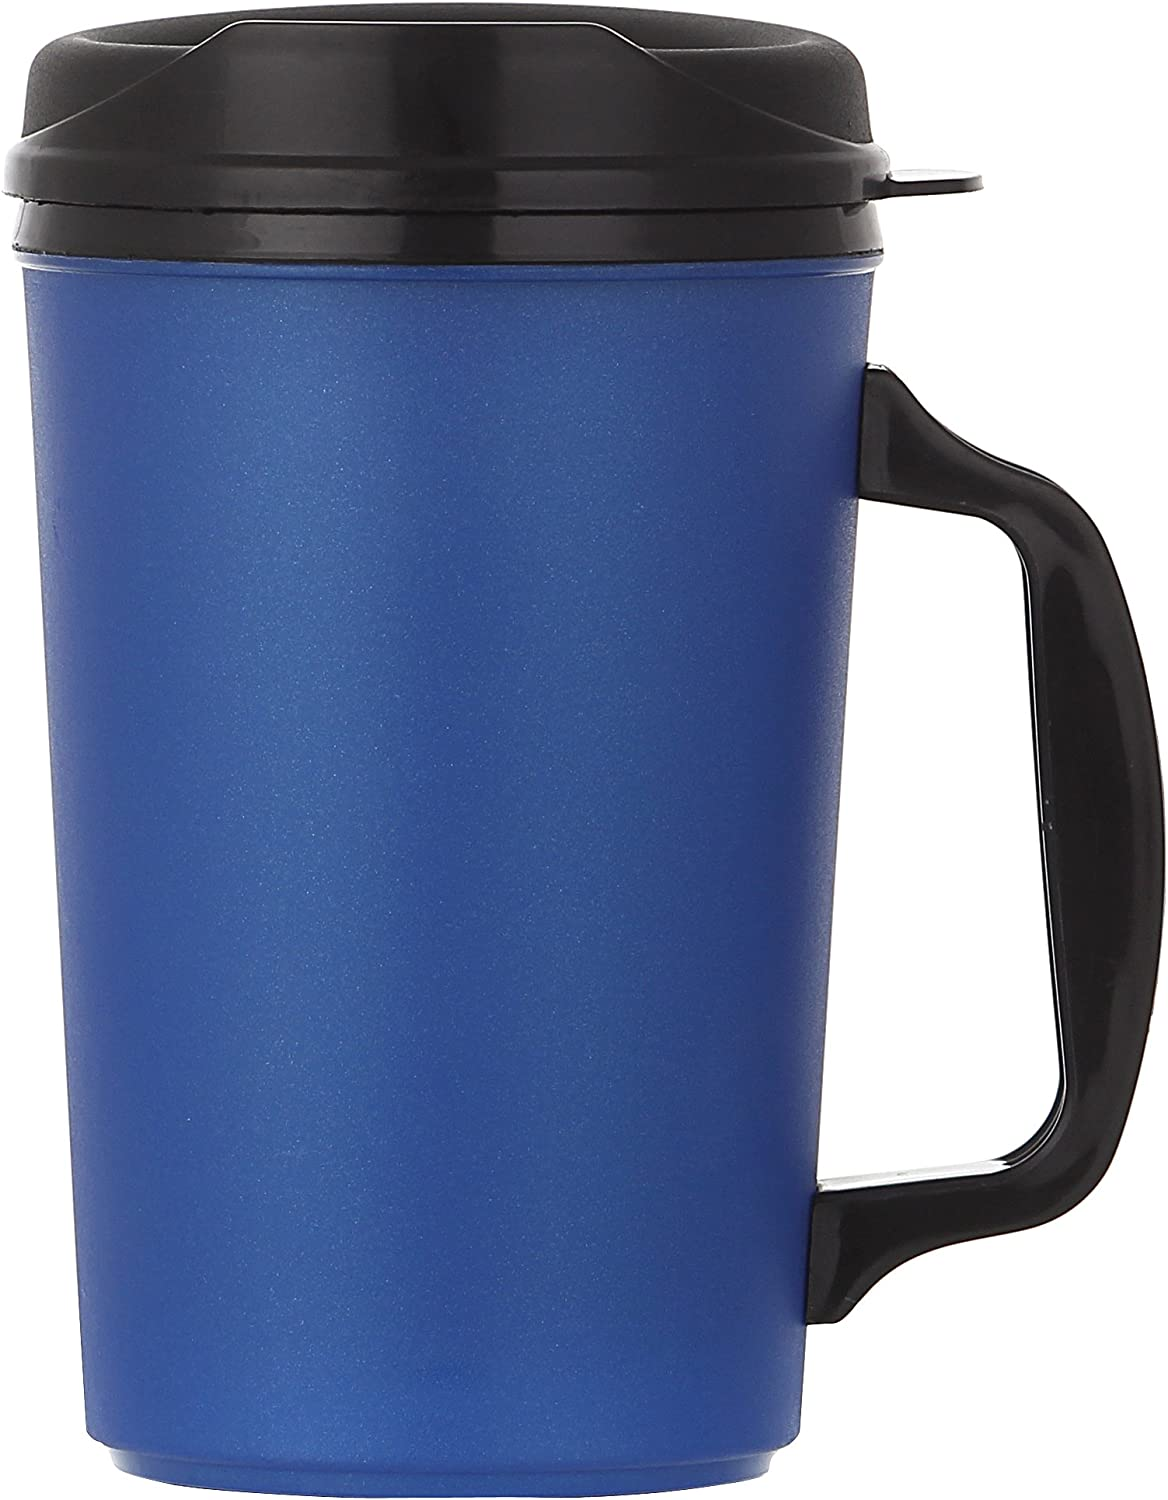 ThermoServ Foam Insulated Mug, 20-Ounce, Pearl Dark Blue